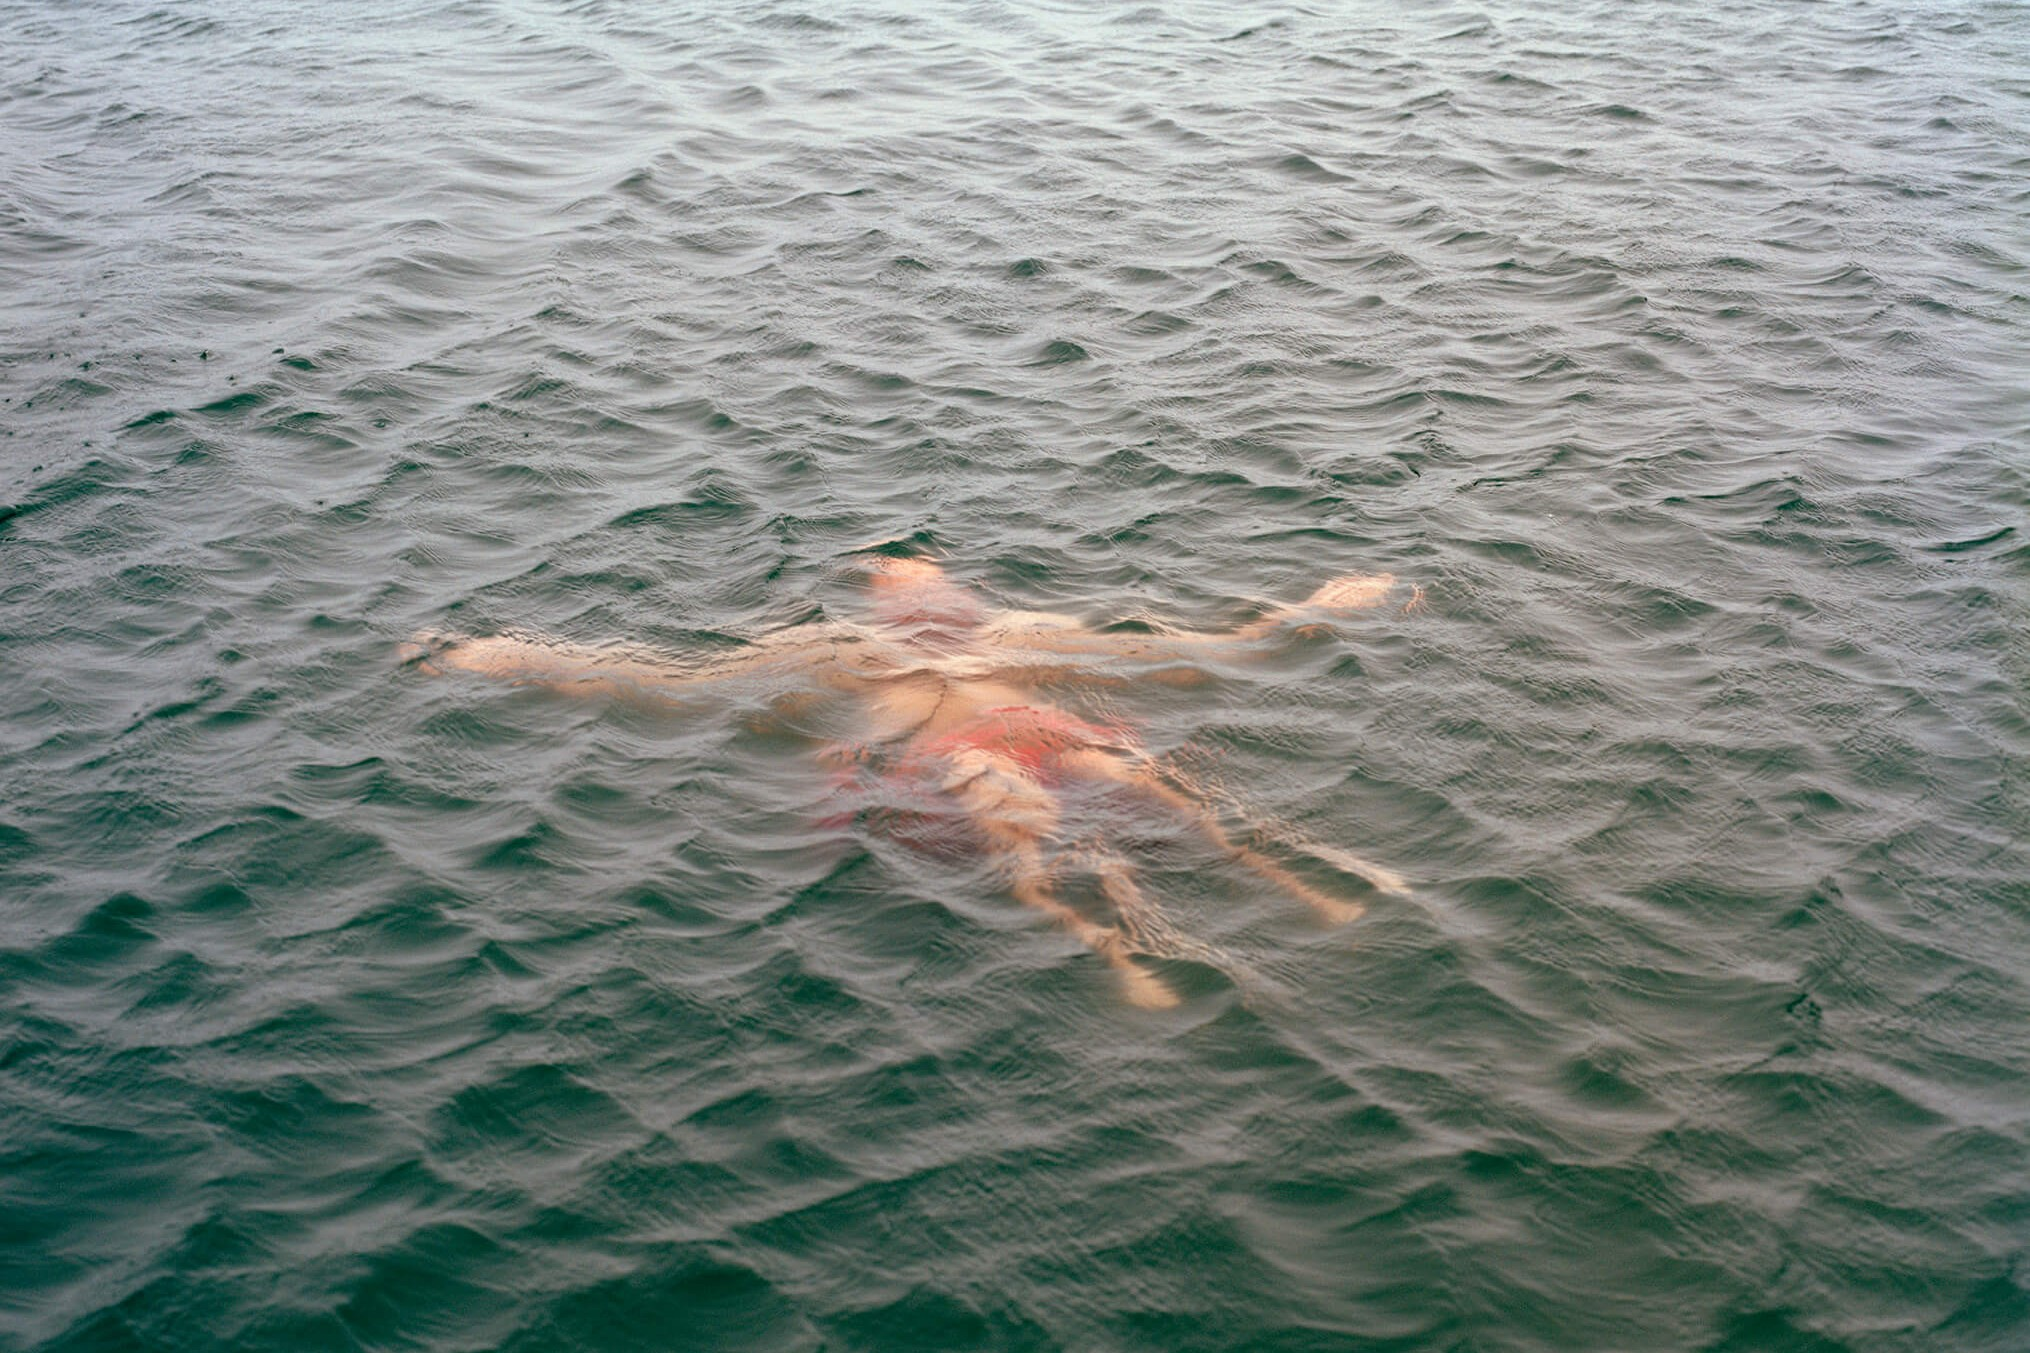 Elliot Cole - A Hull to Hold the Waves at Bay the south west collective of photography person floating in water